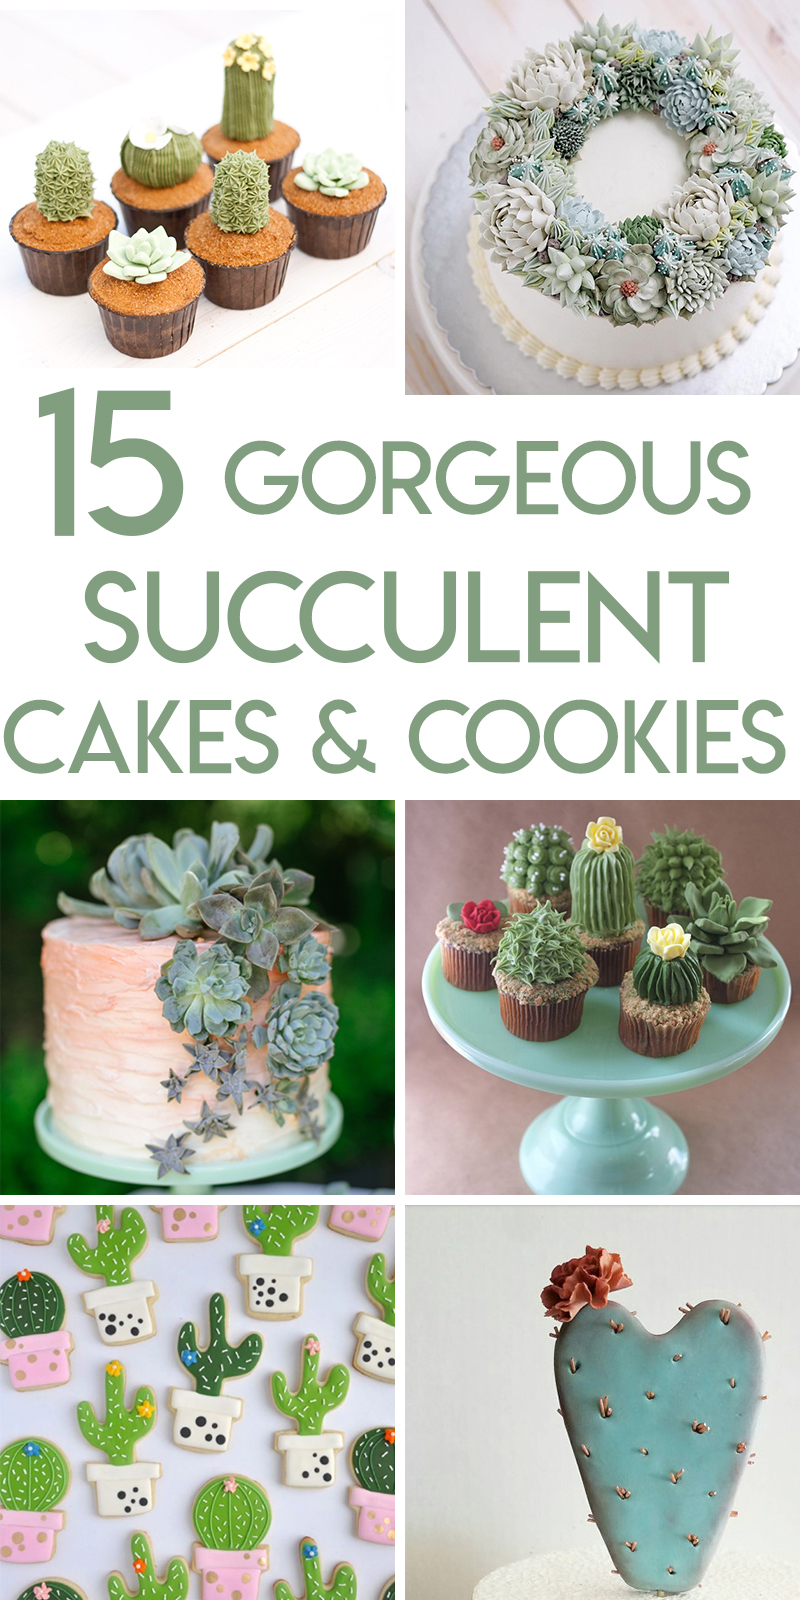 15 Stunning Succulent Cakes Cookies And Cupcakes Random Acts Of Baking